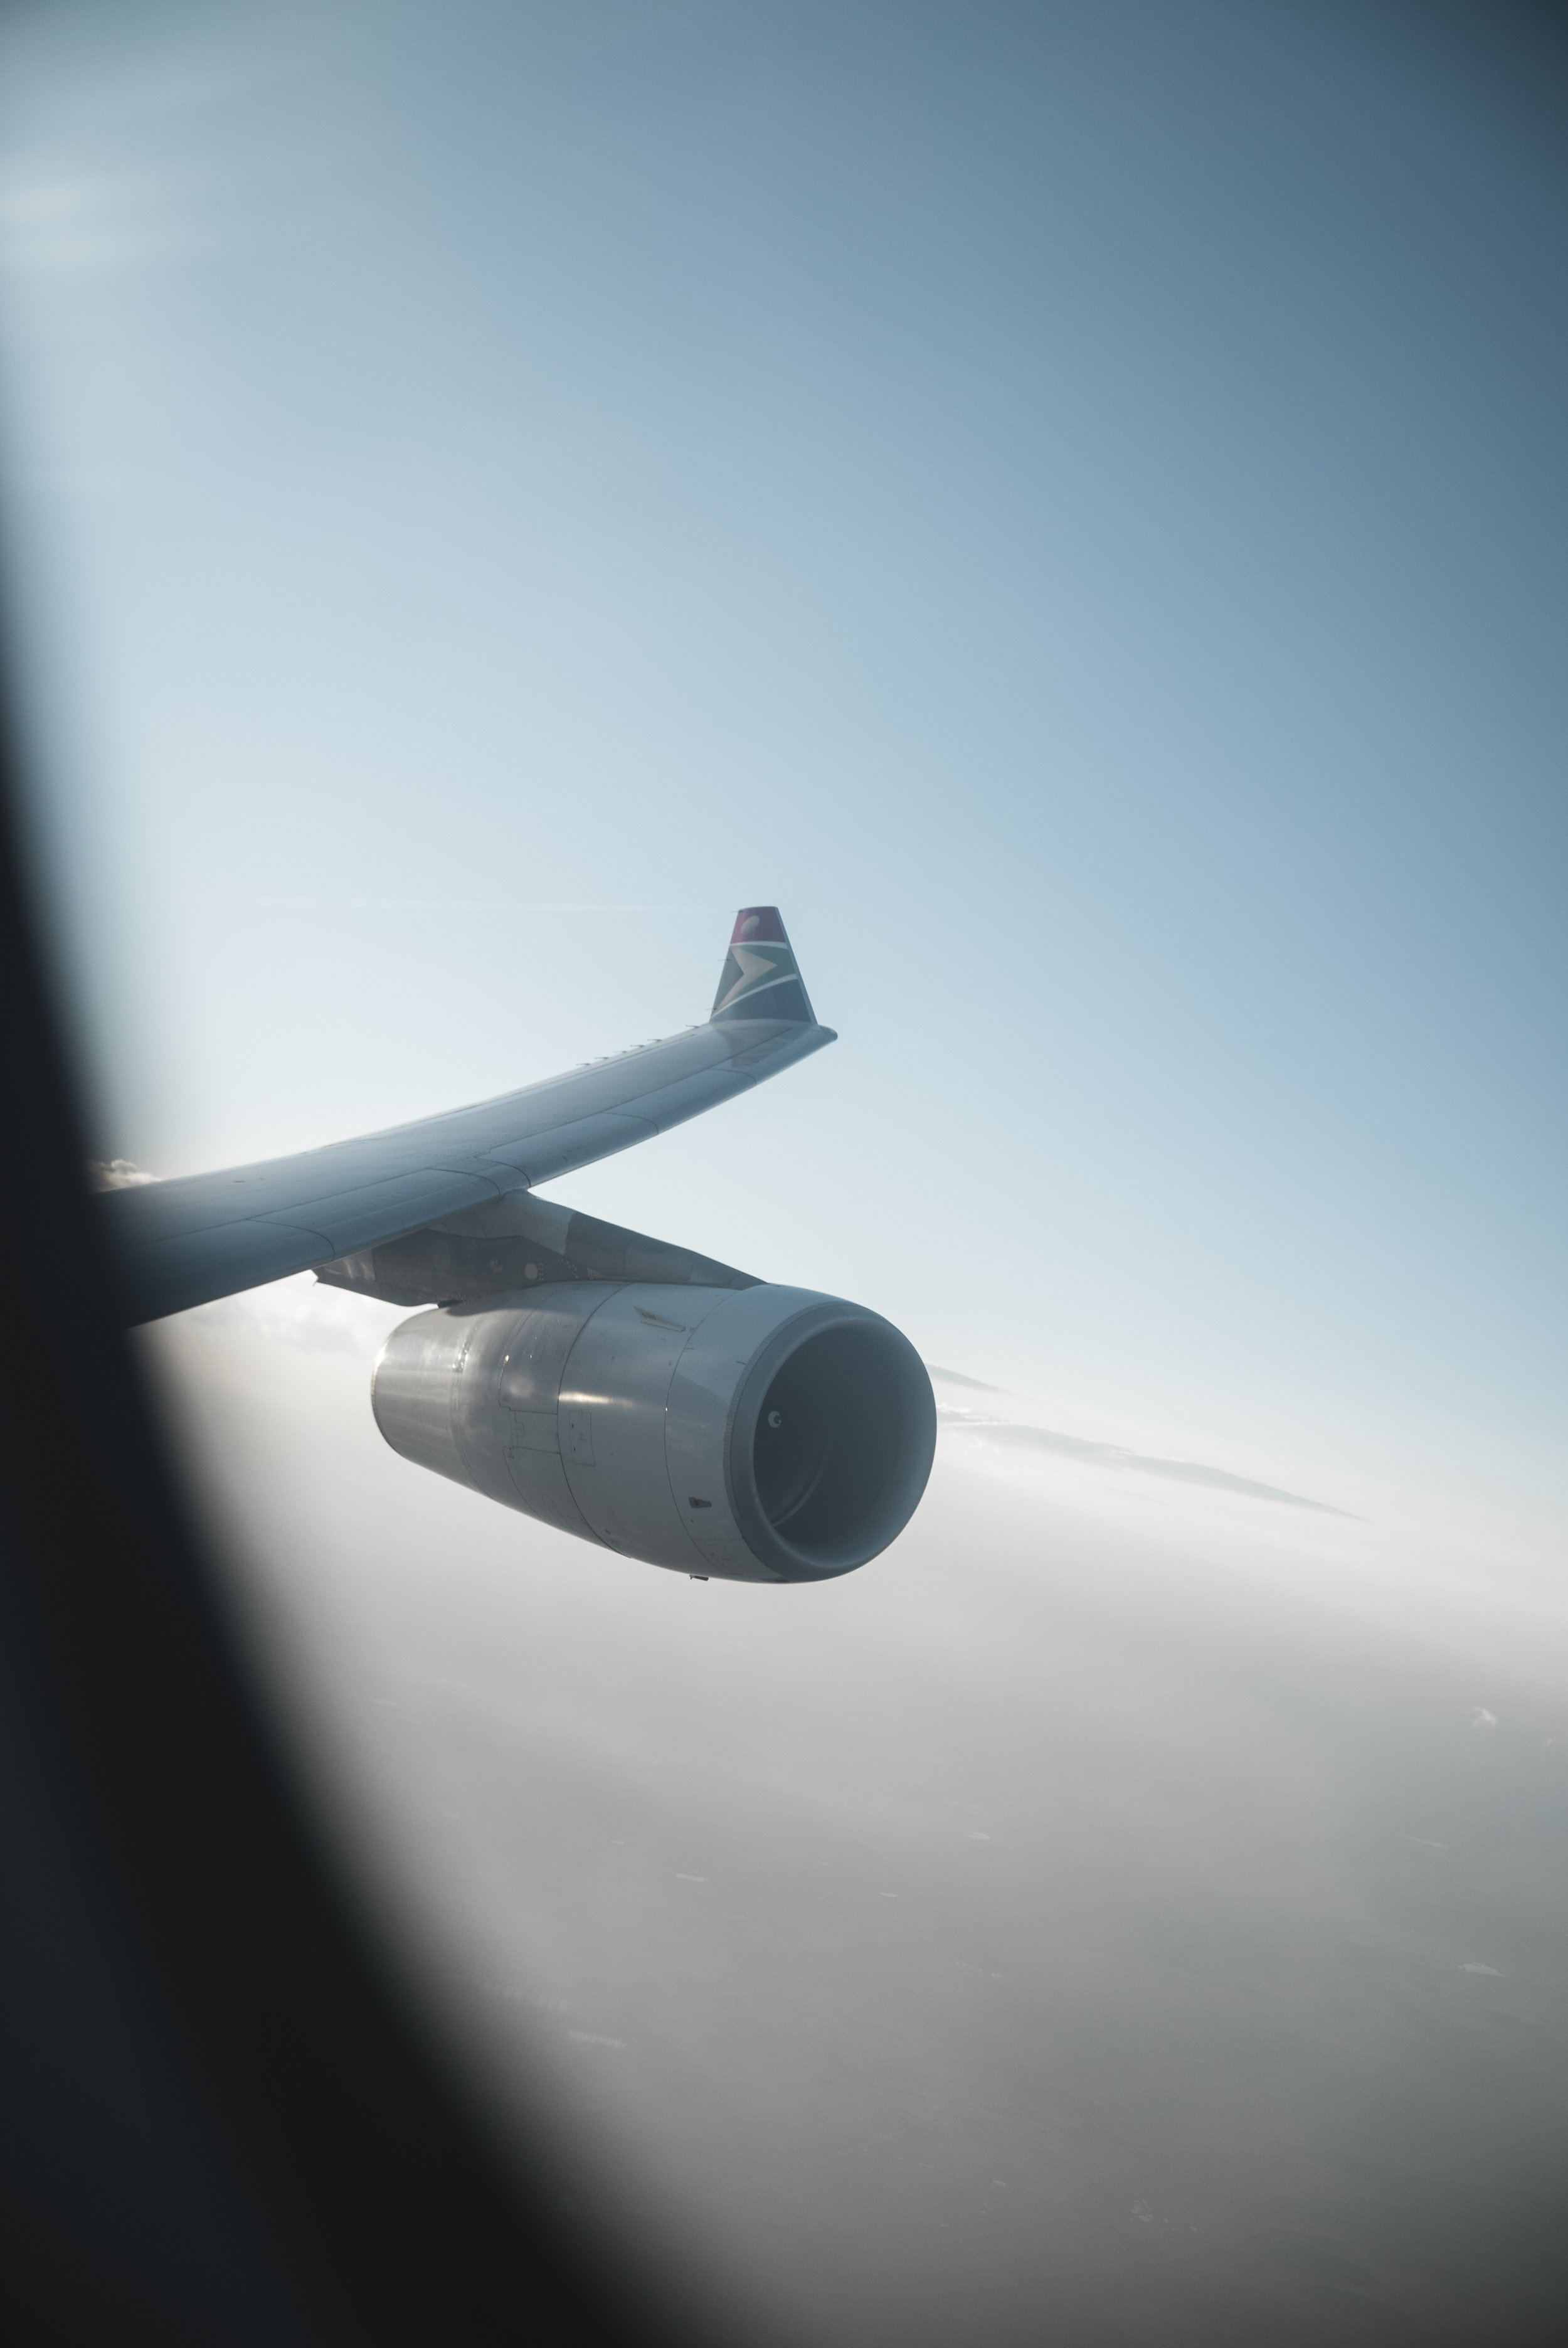 View from my seat shortly after take-off.